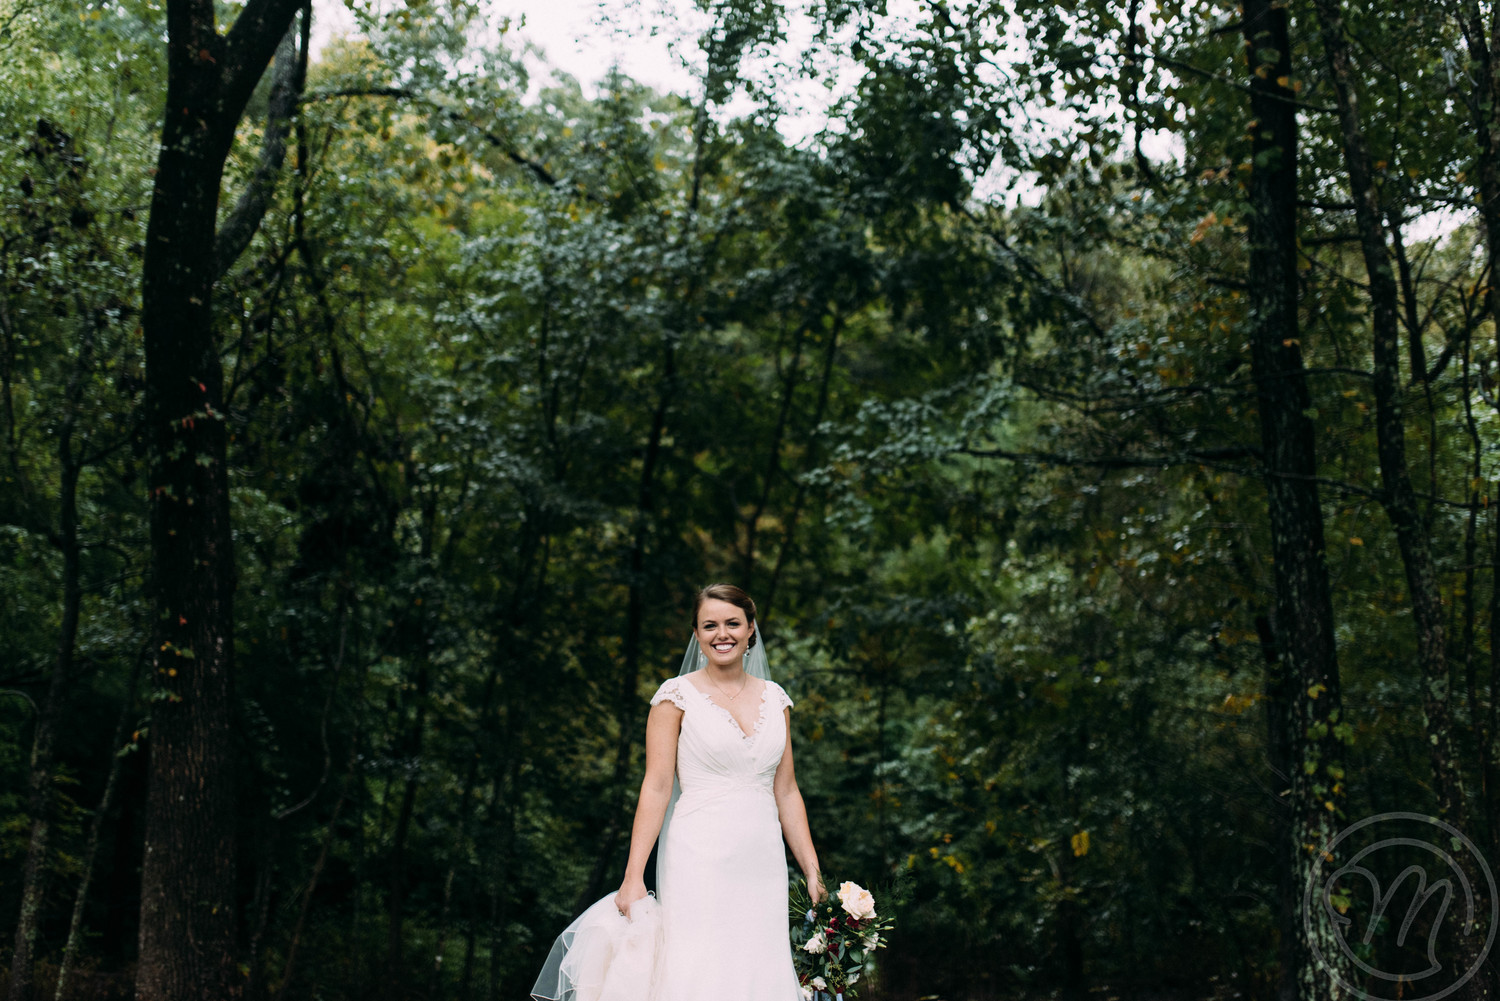 mary-claire-photography-ivory-and-beau-bridal-boutique-savannah-wedding-dresses-savannah-wedding-planner-savannah-weddings-savannah-bridal-gowns-blush-by-hayley-paige-wedding-dress-may-lace-mermaid-8.jpg